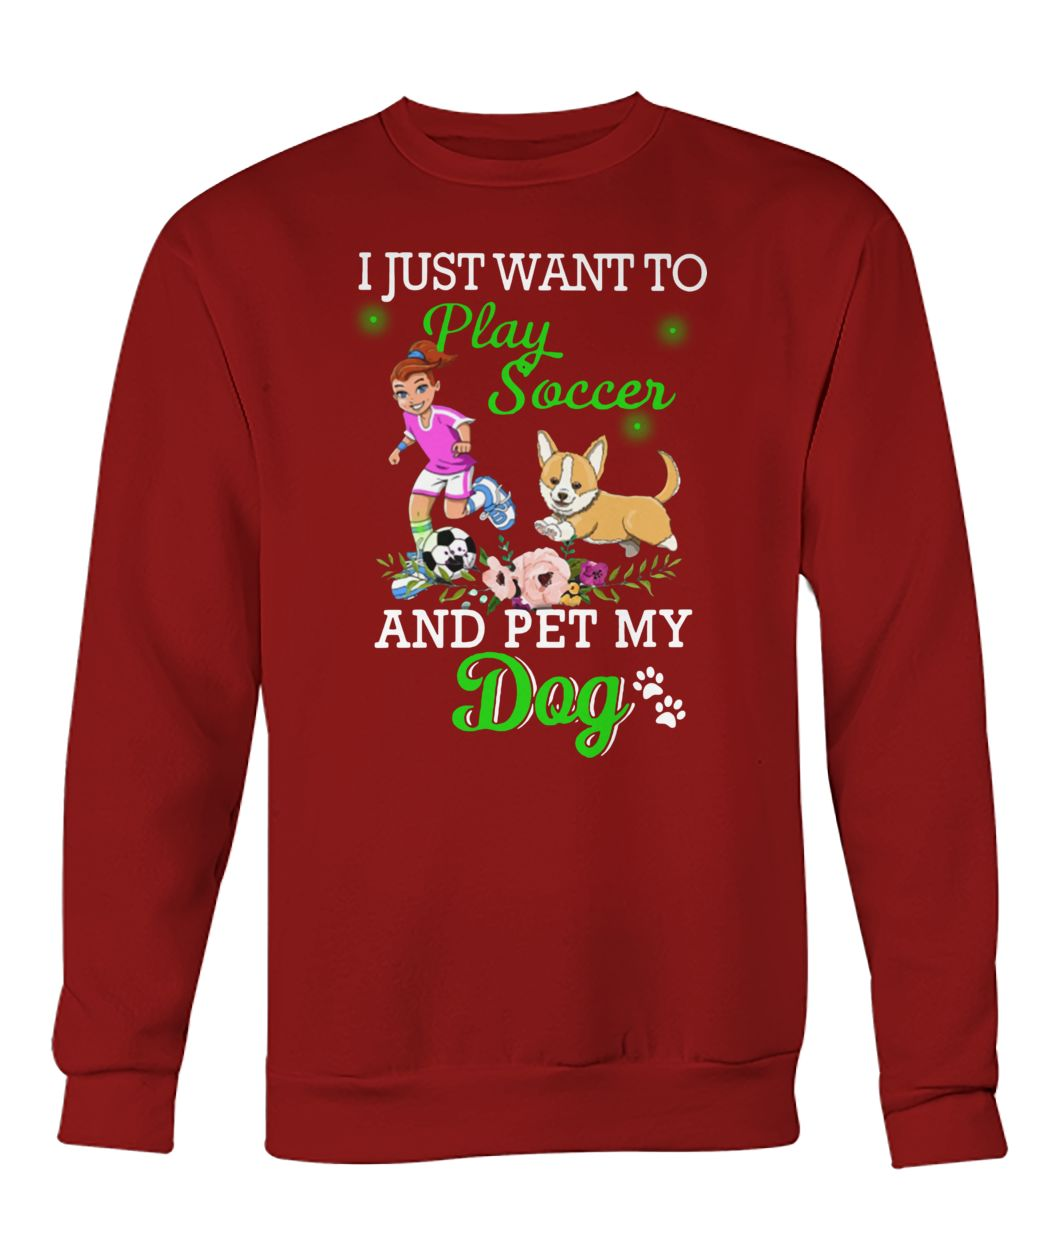 I just want to play soccer and pet my dog crew neck sweatshirt